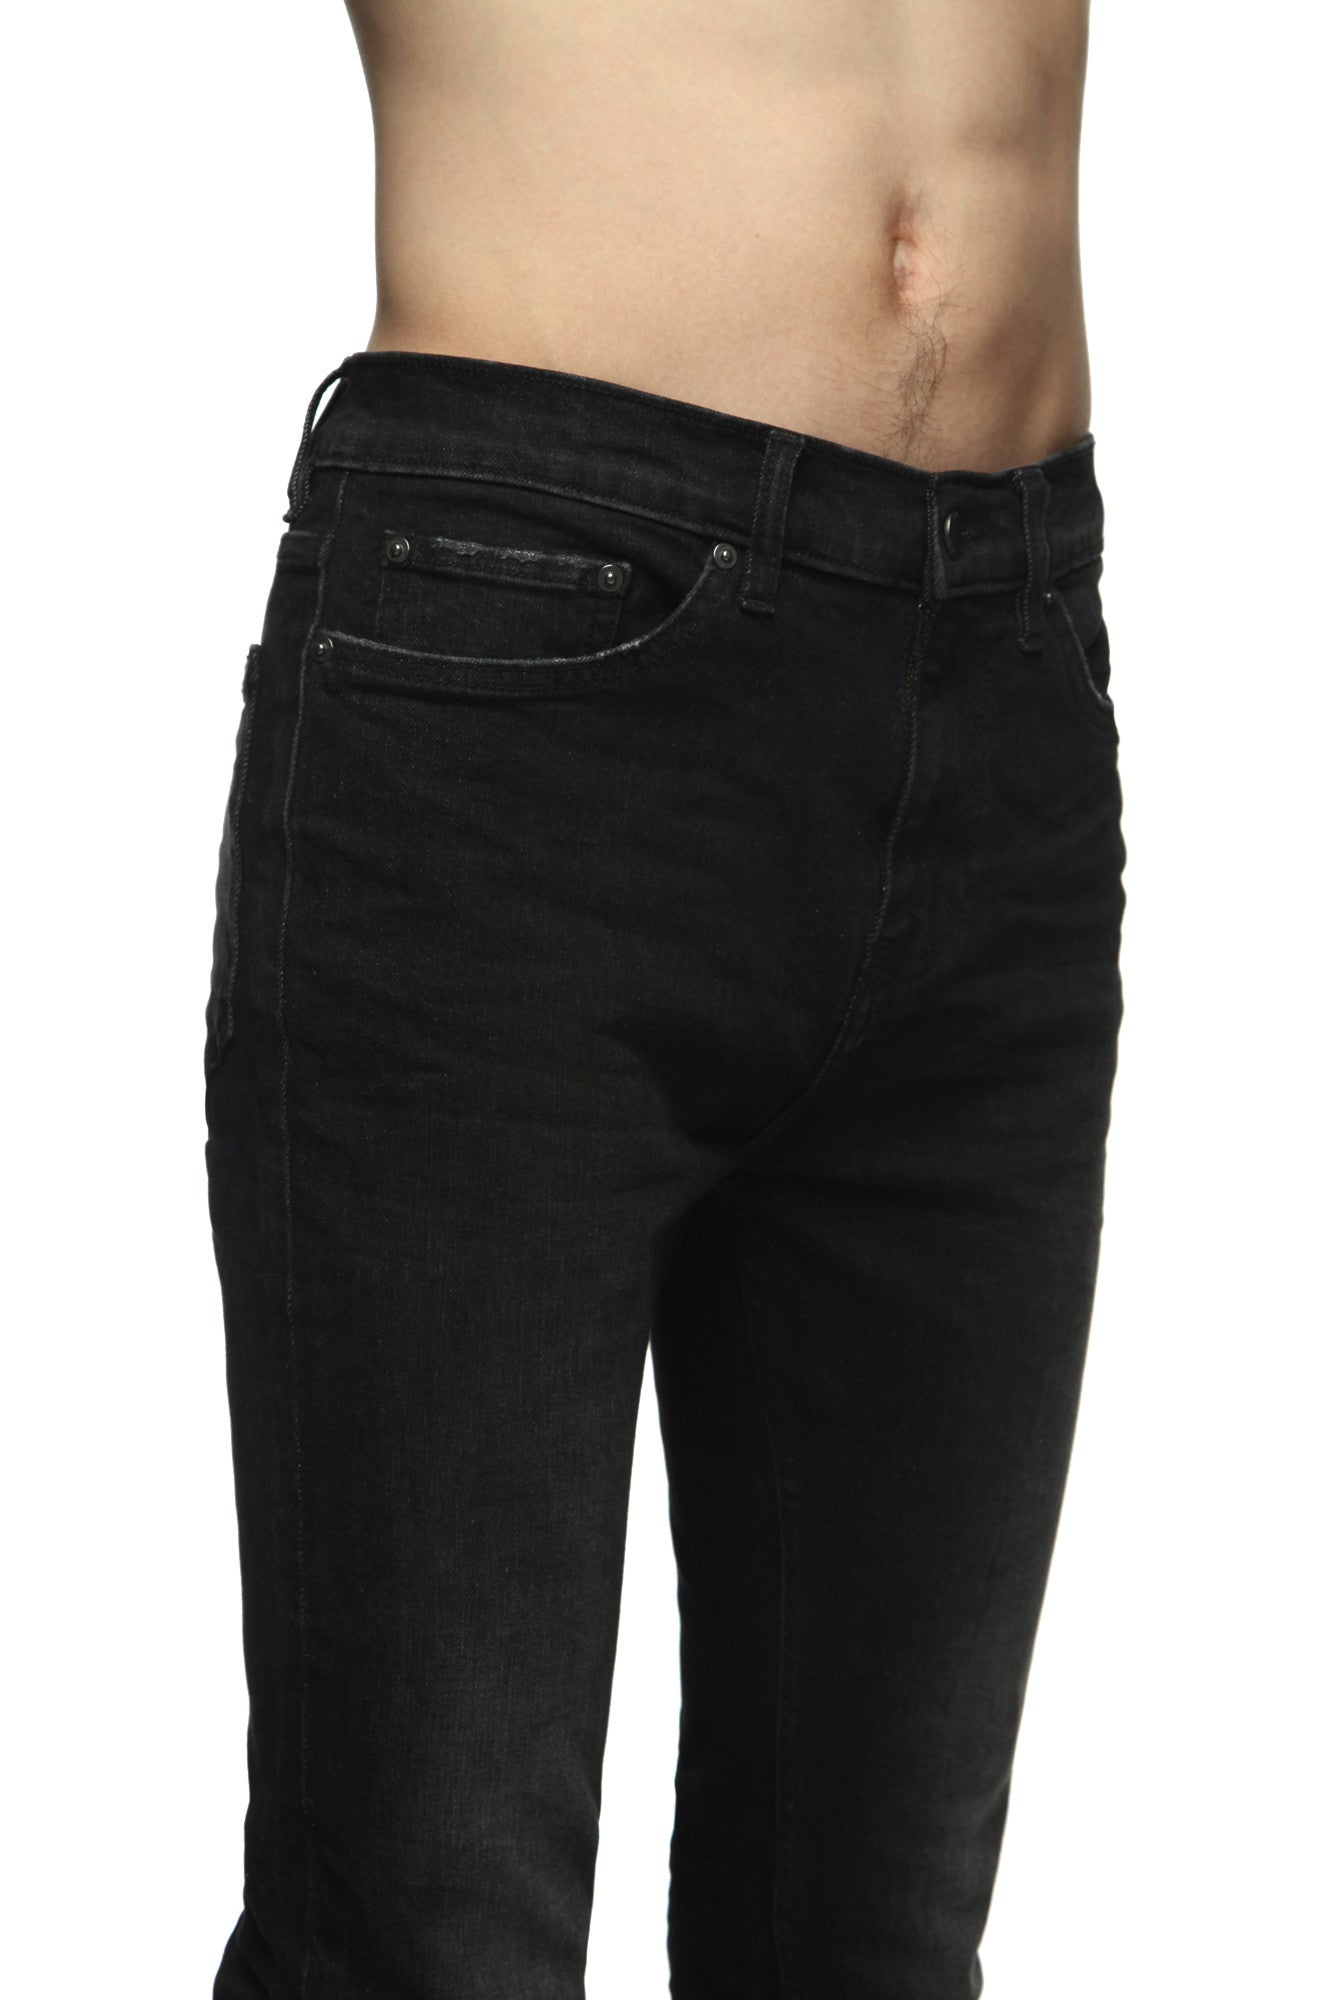 Mens Jeans 38 Hendrix Black